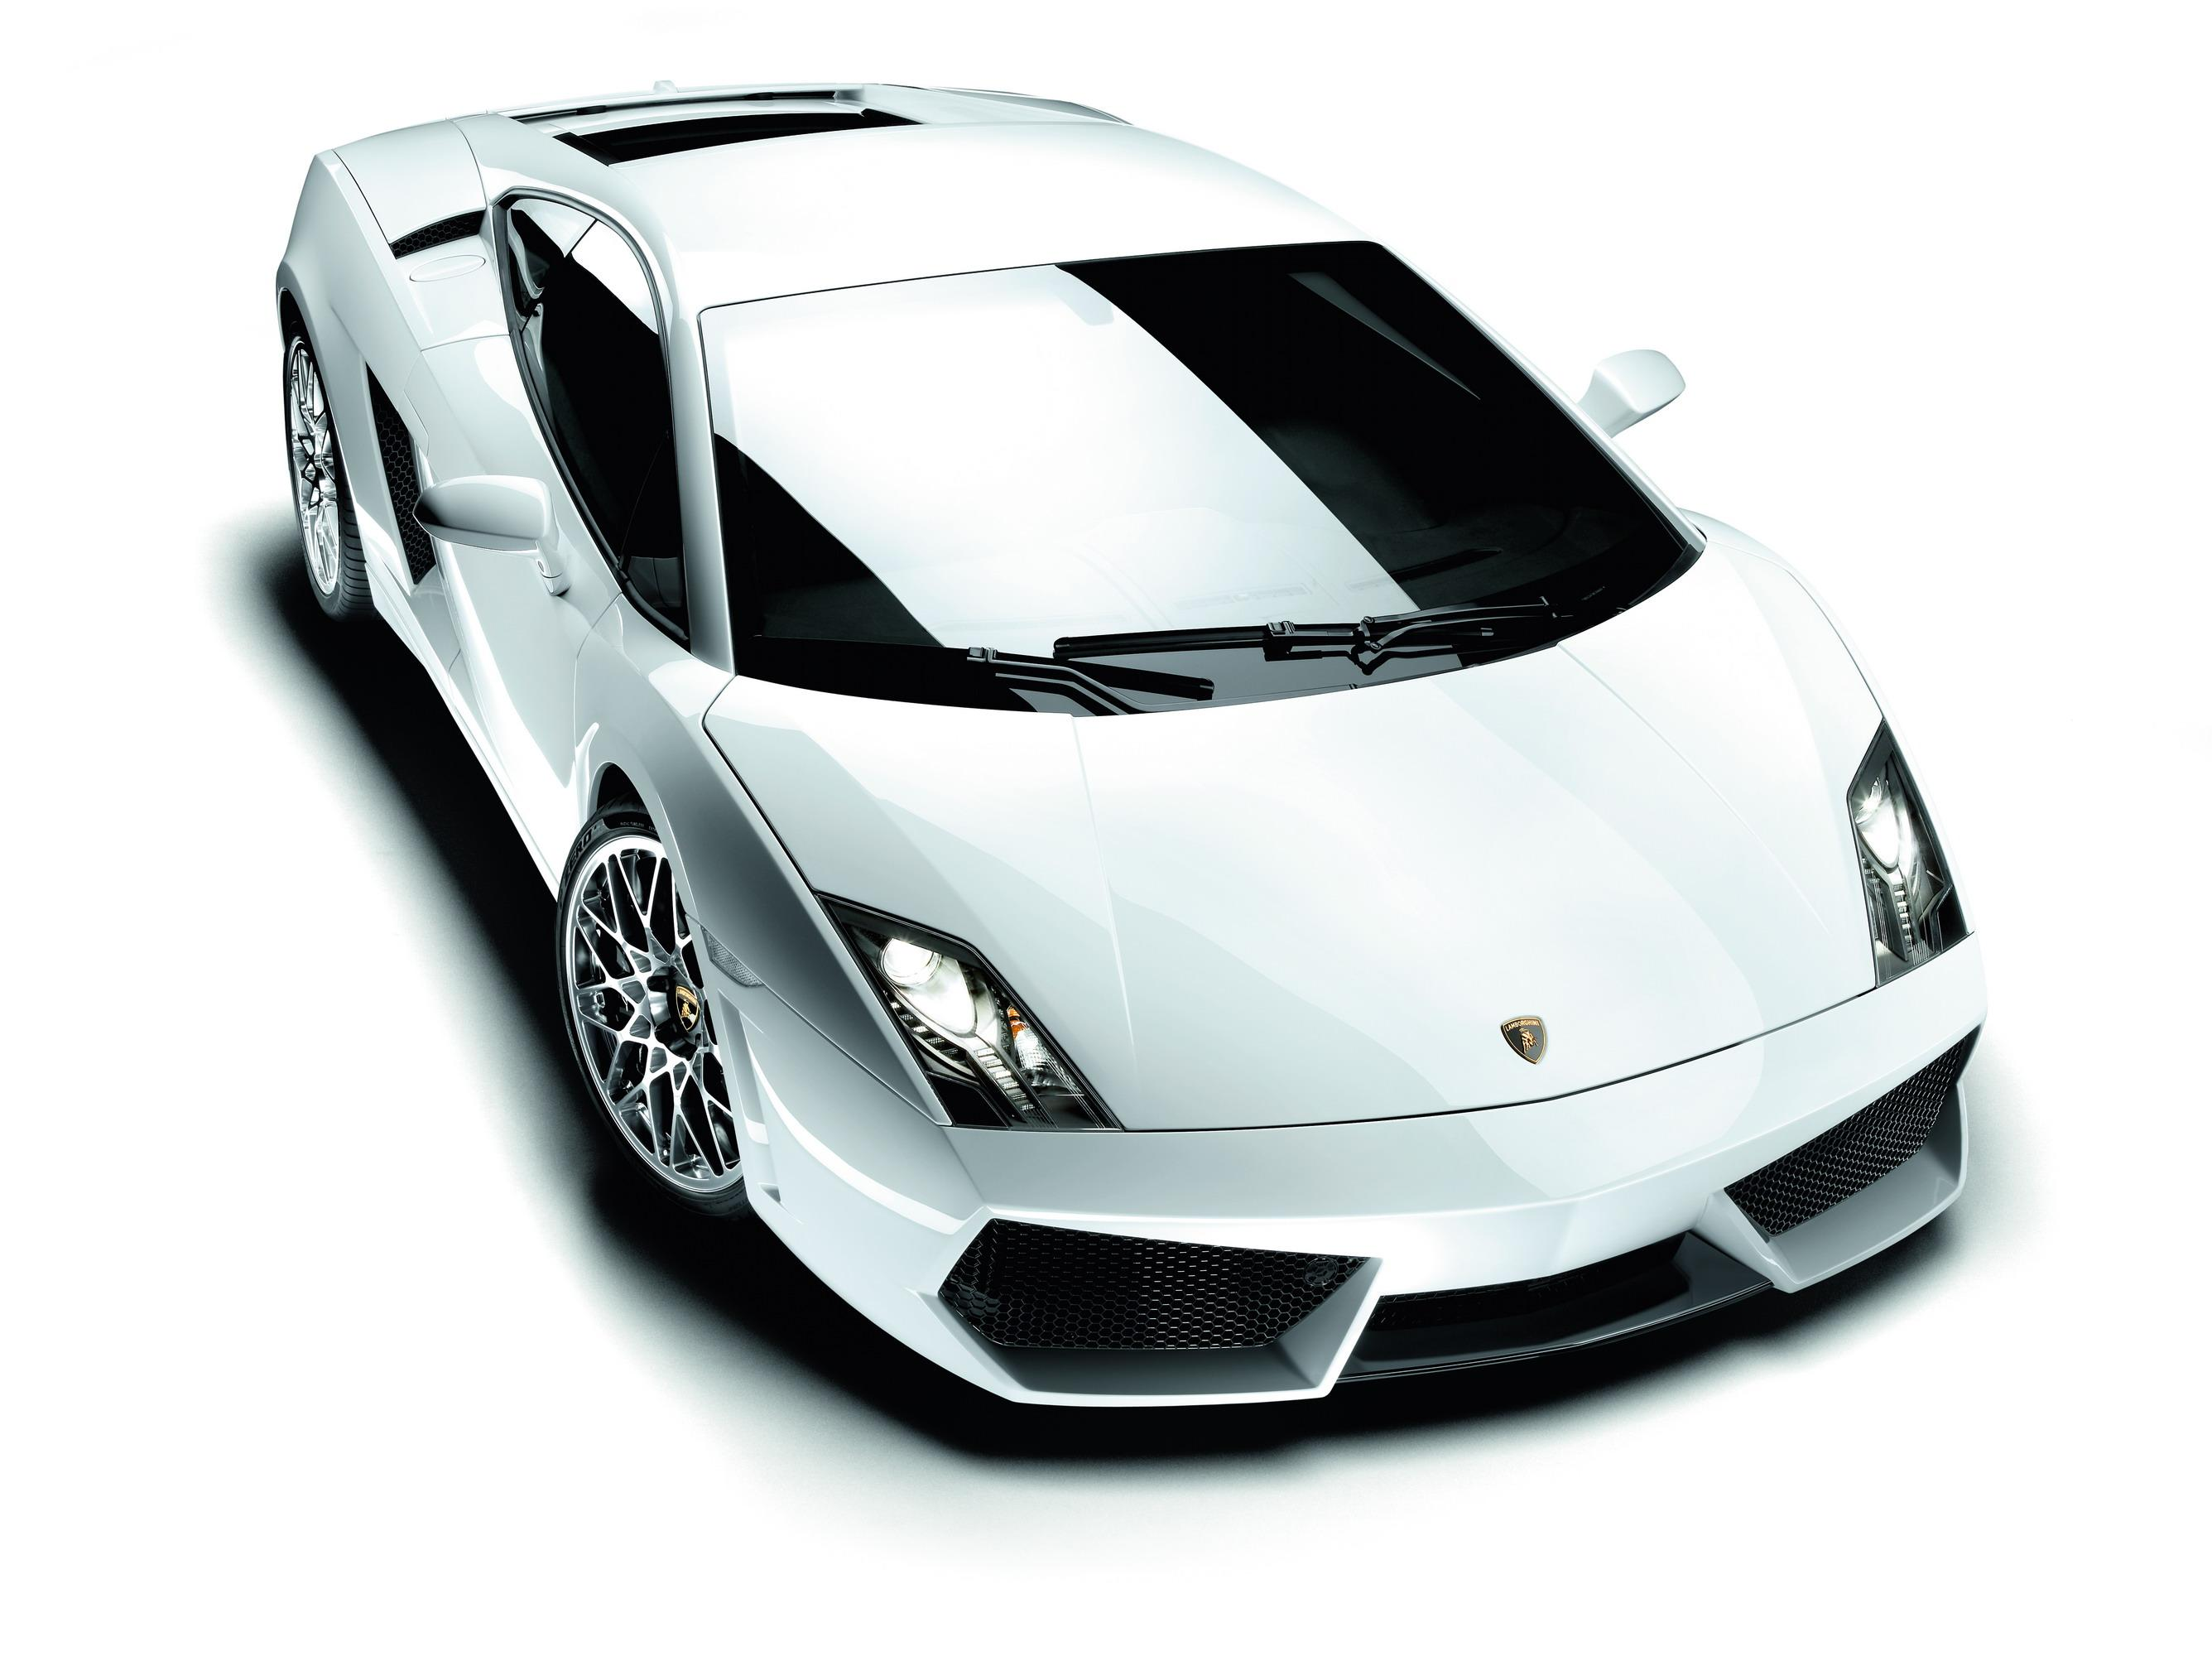 2009 Lamborghini Gallardo Lp560 4 Top Speed